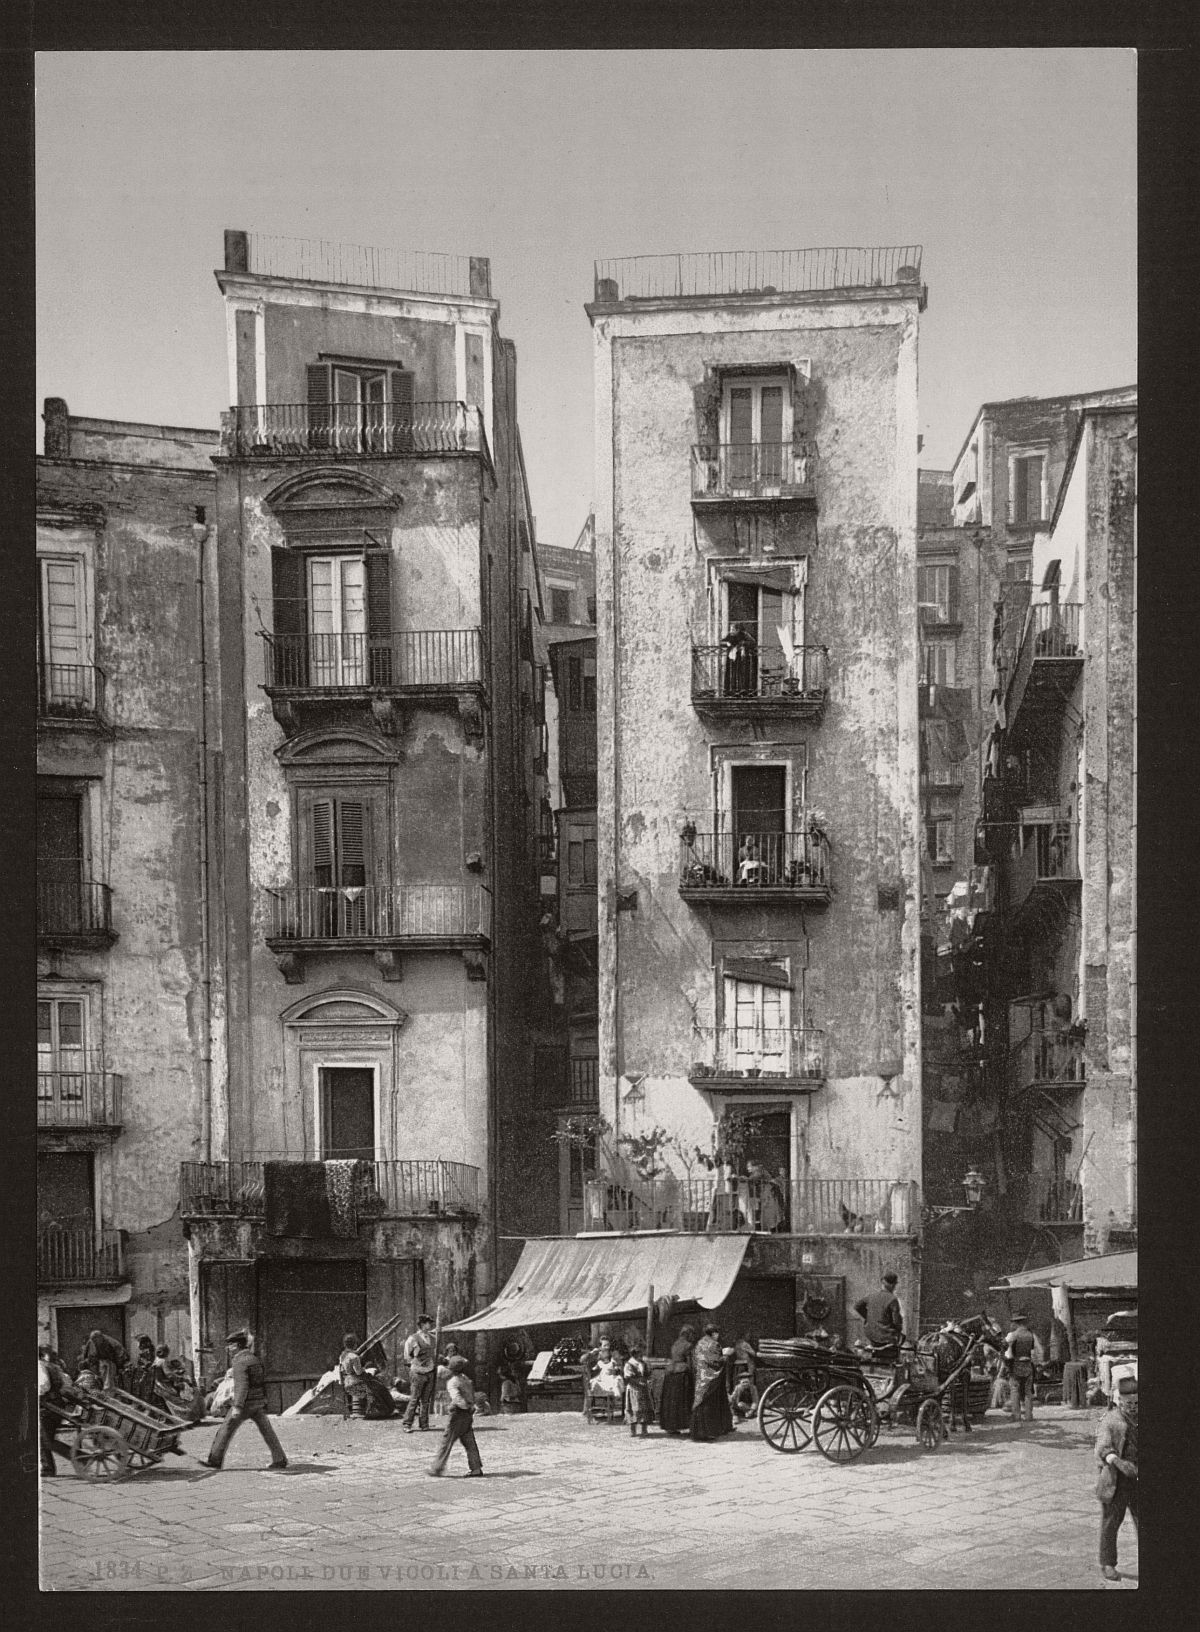 historic-bw-photos-of-naples-italy-in-19th-century-06